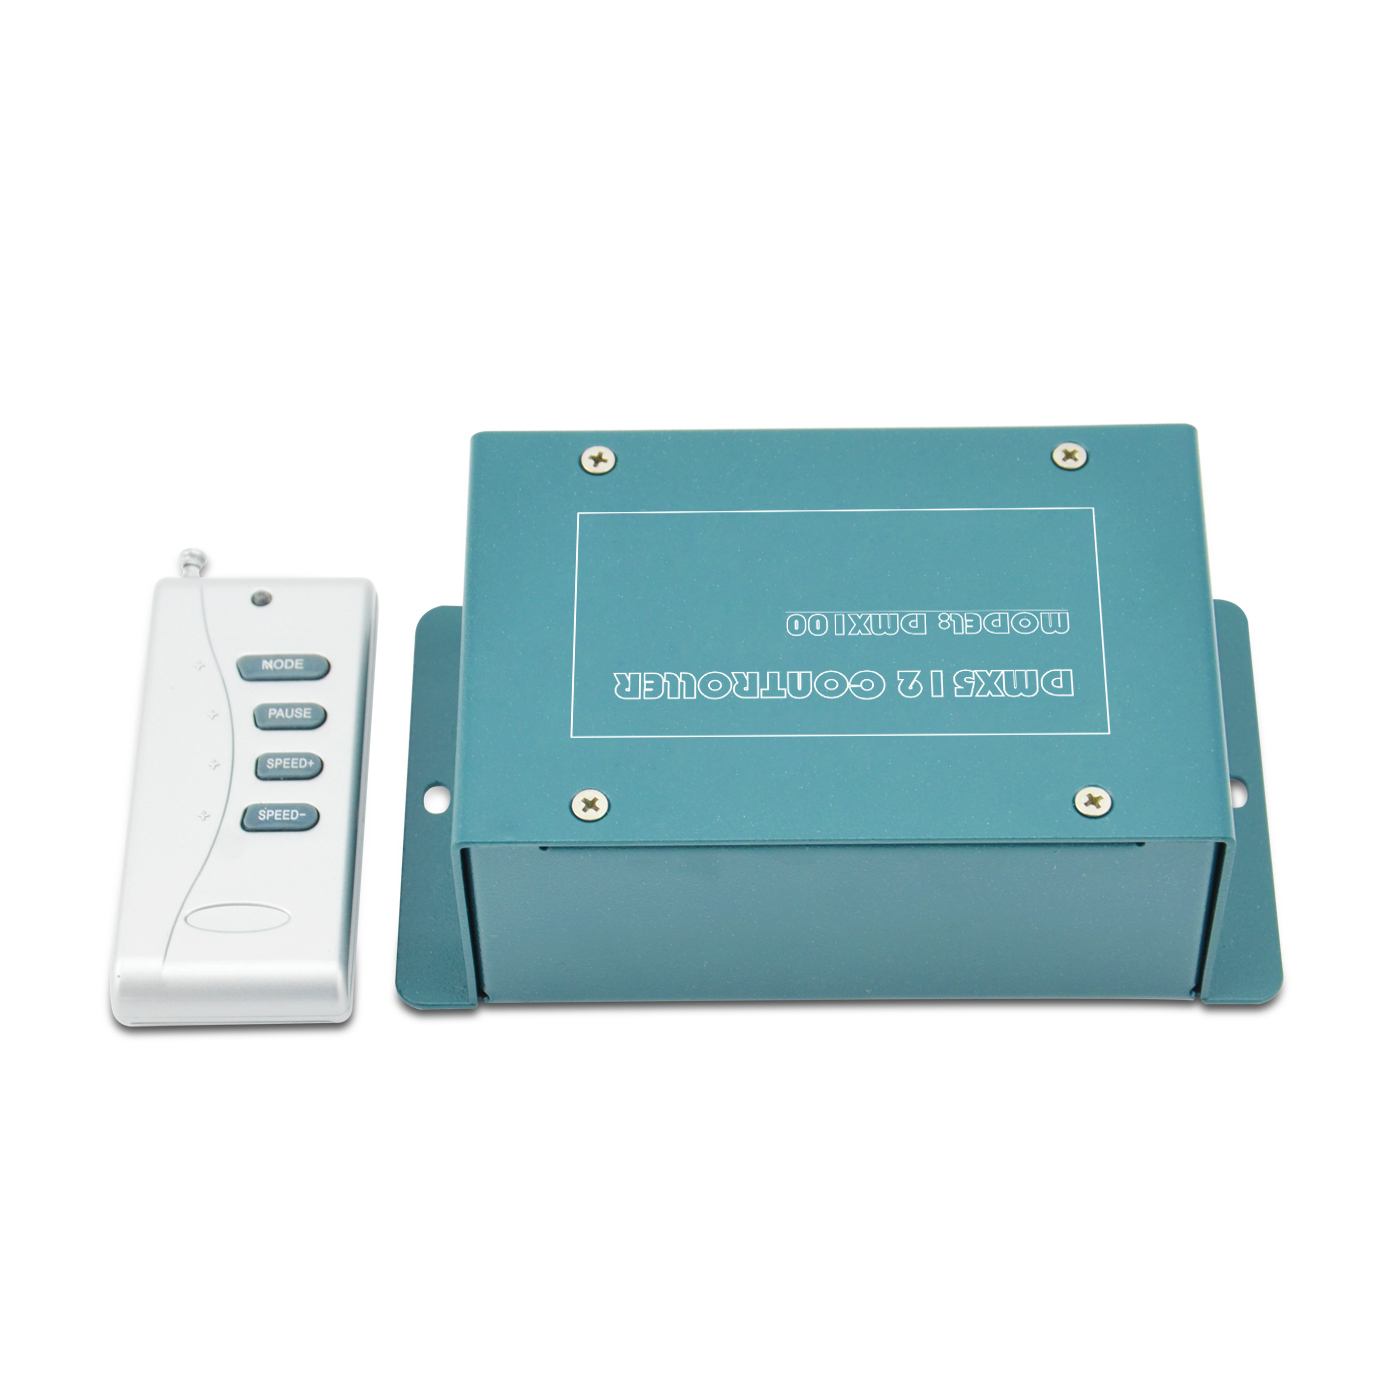 China Cheap price Dali Dimmable Led Driver 24v - Stand Alone 512ch XLR-3/RJ45 DMX Master Controller DMX100 – Euchips